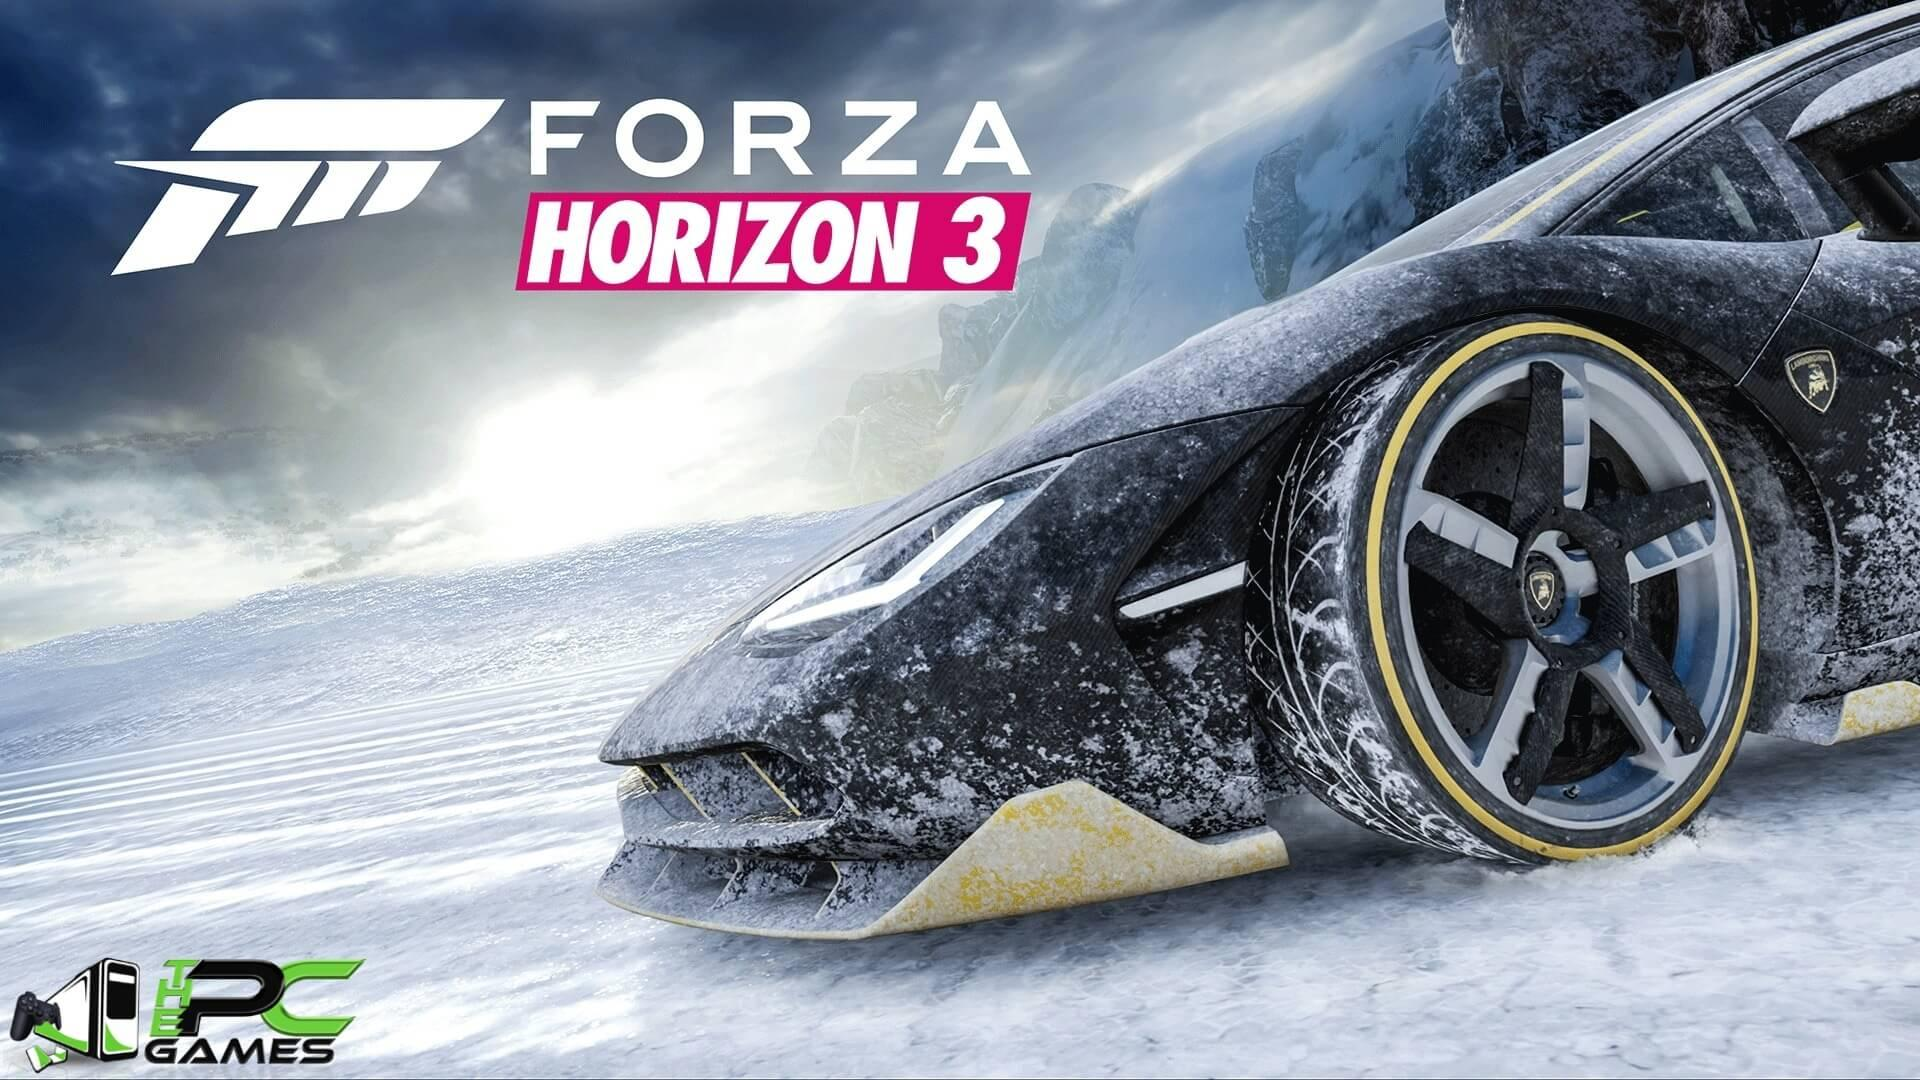 Forza Horizon 3 With All DLCs And Updates iOS/APK Version Full Game Free Download